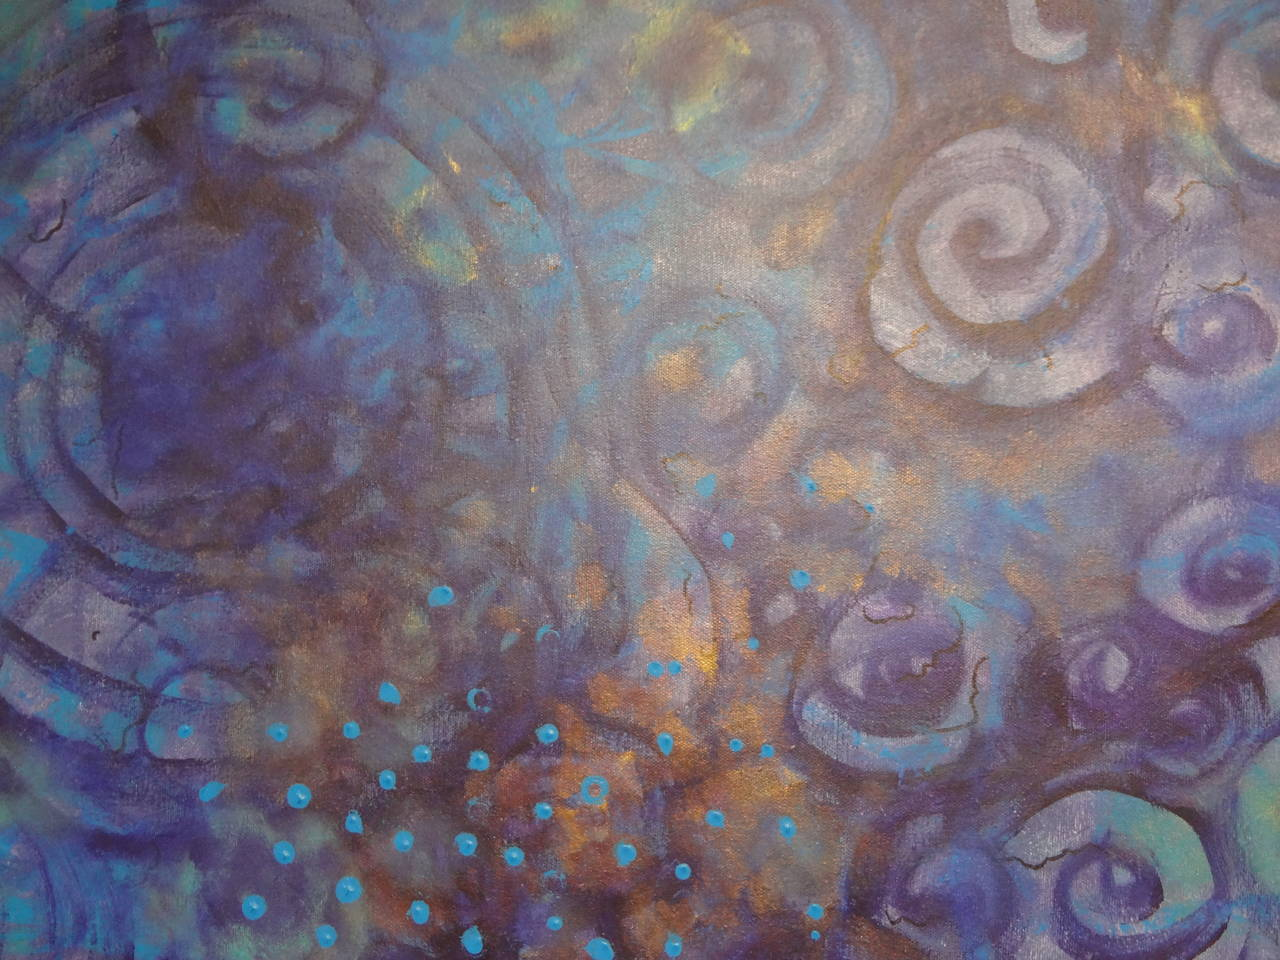 Abstract Acrylic on Canvas by Javier Barrionuevo For Sale 1